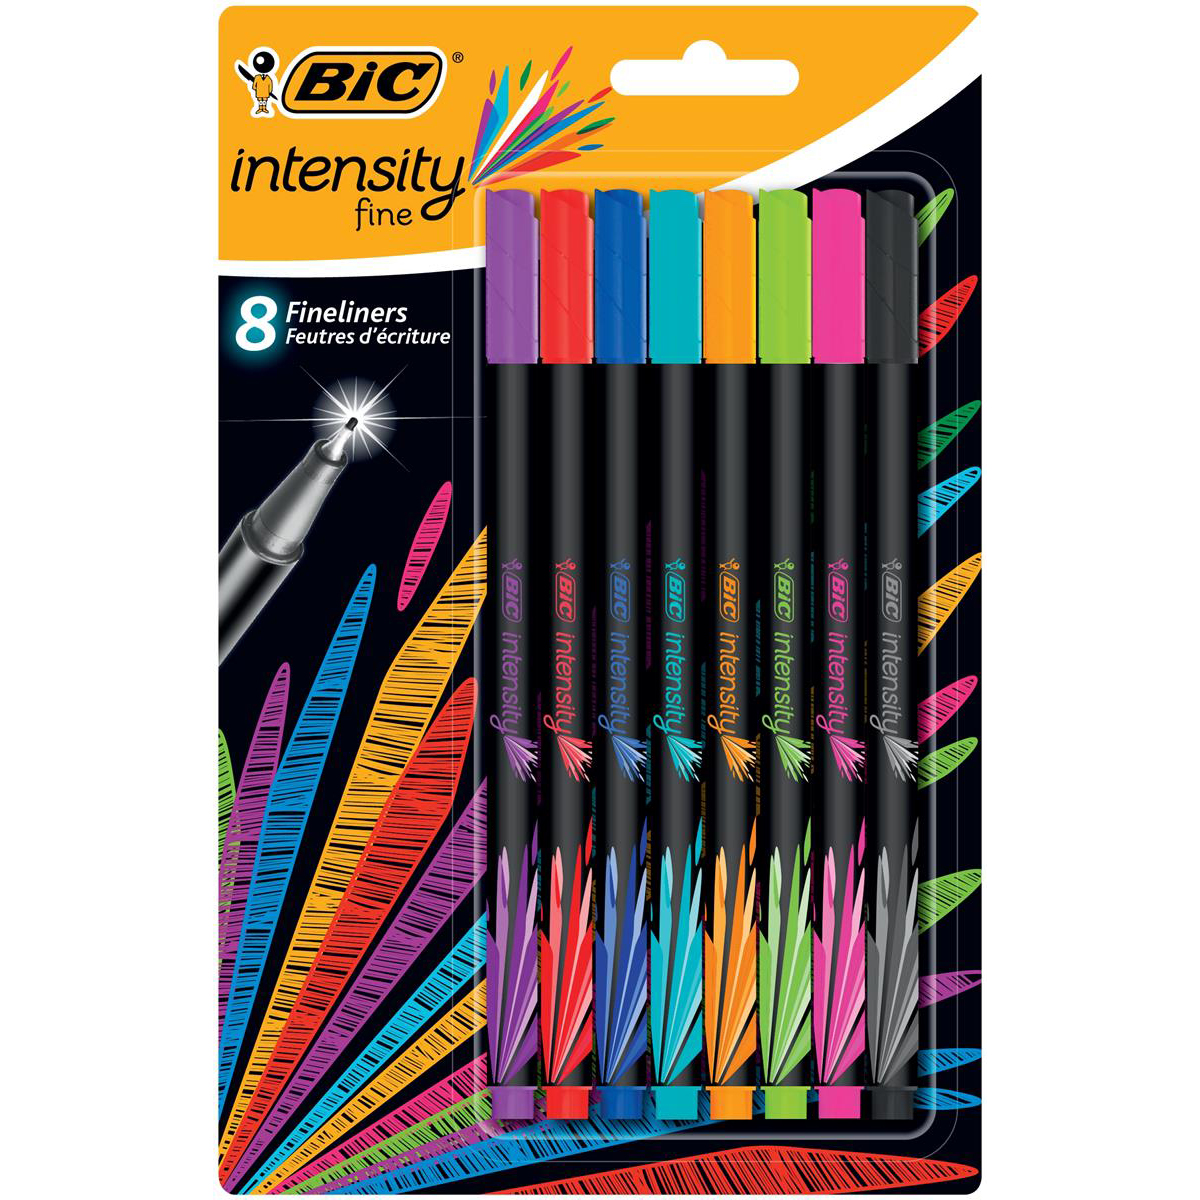 Bic Intensity Fine Writing Felt Pen 8 Assorted Bright Colours Ref 942075 Pack 8